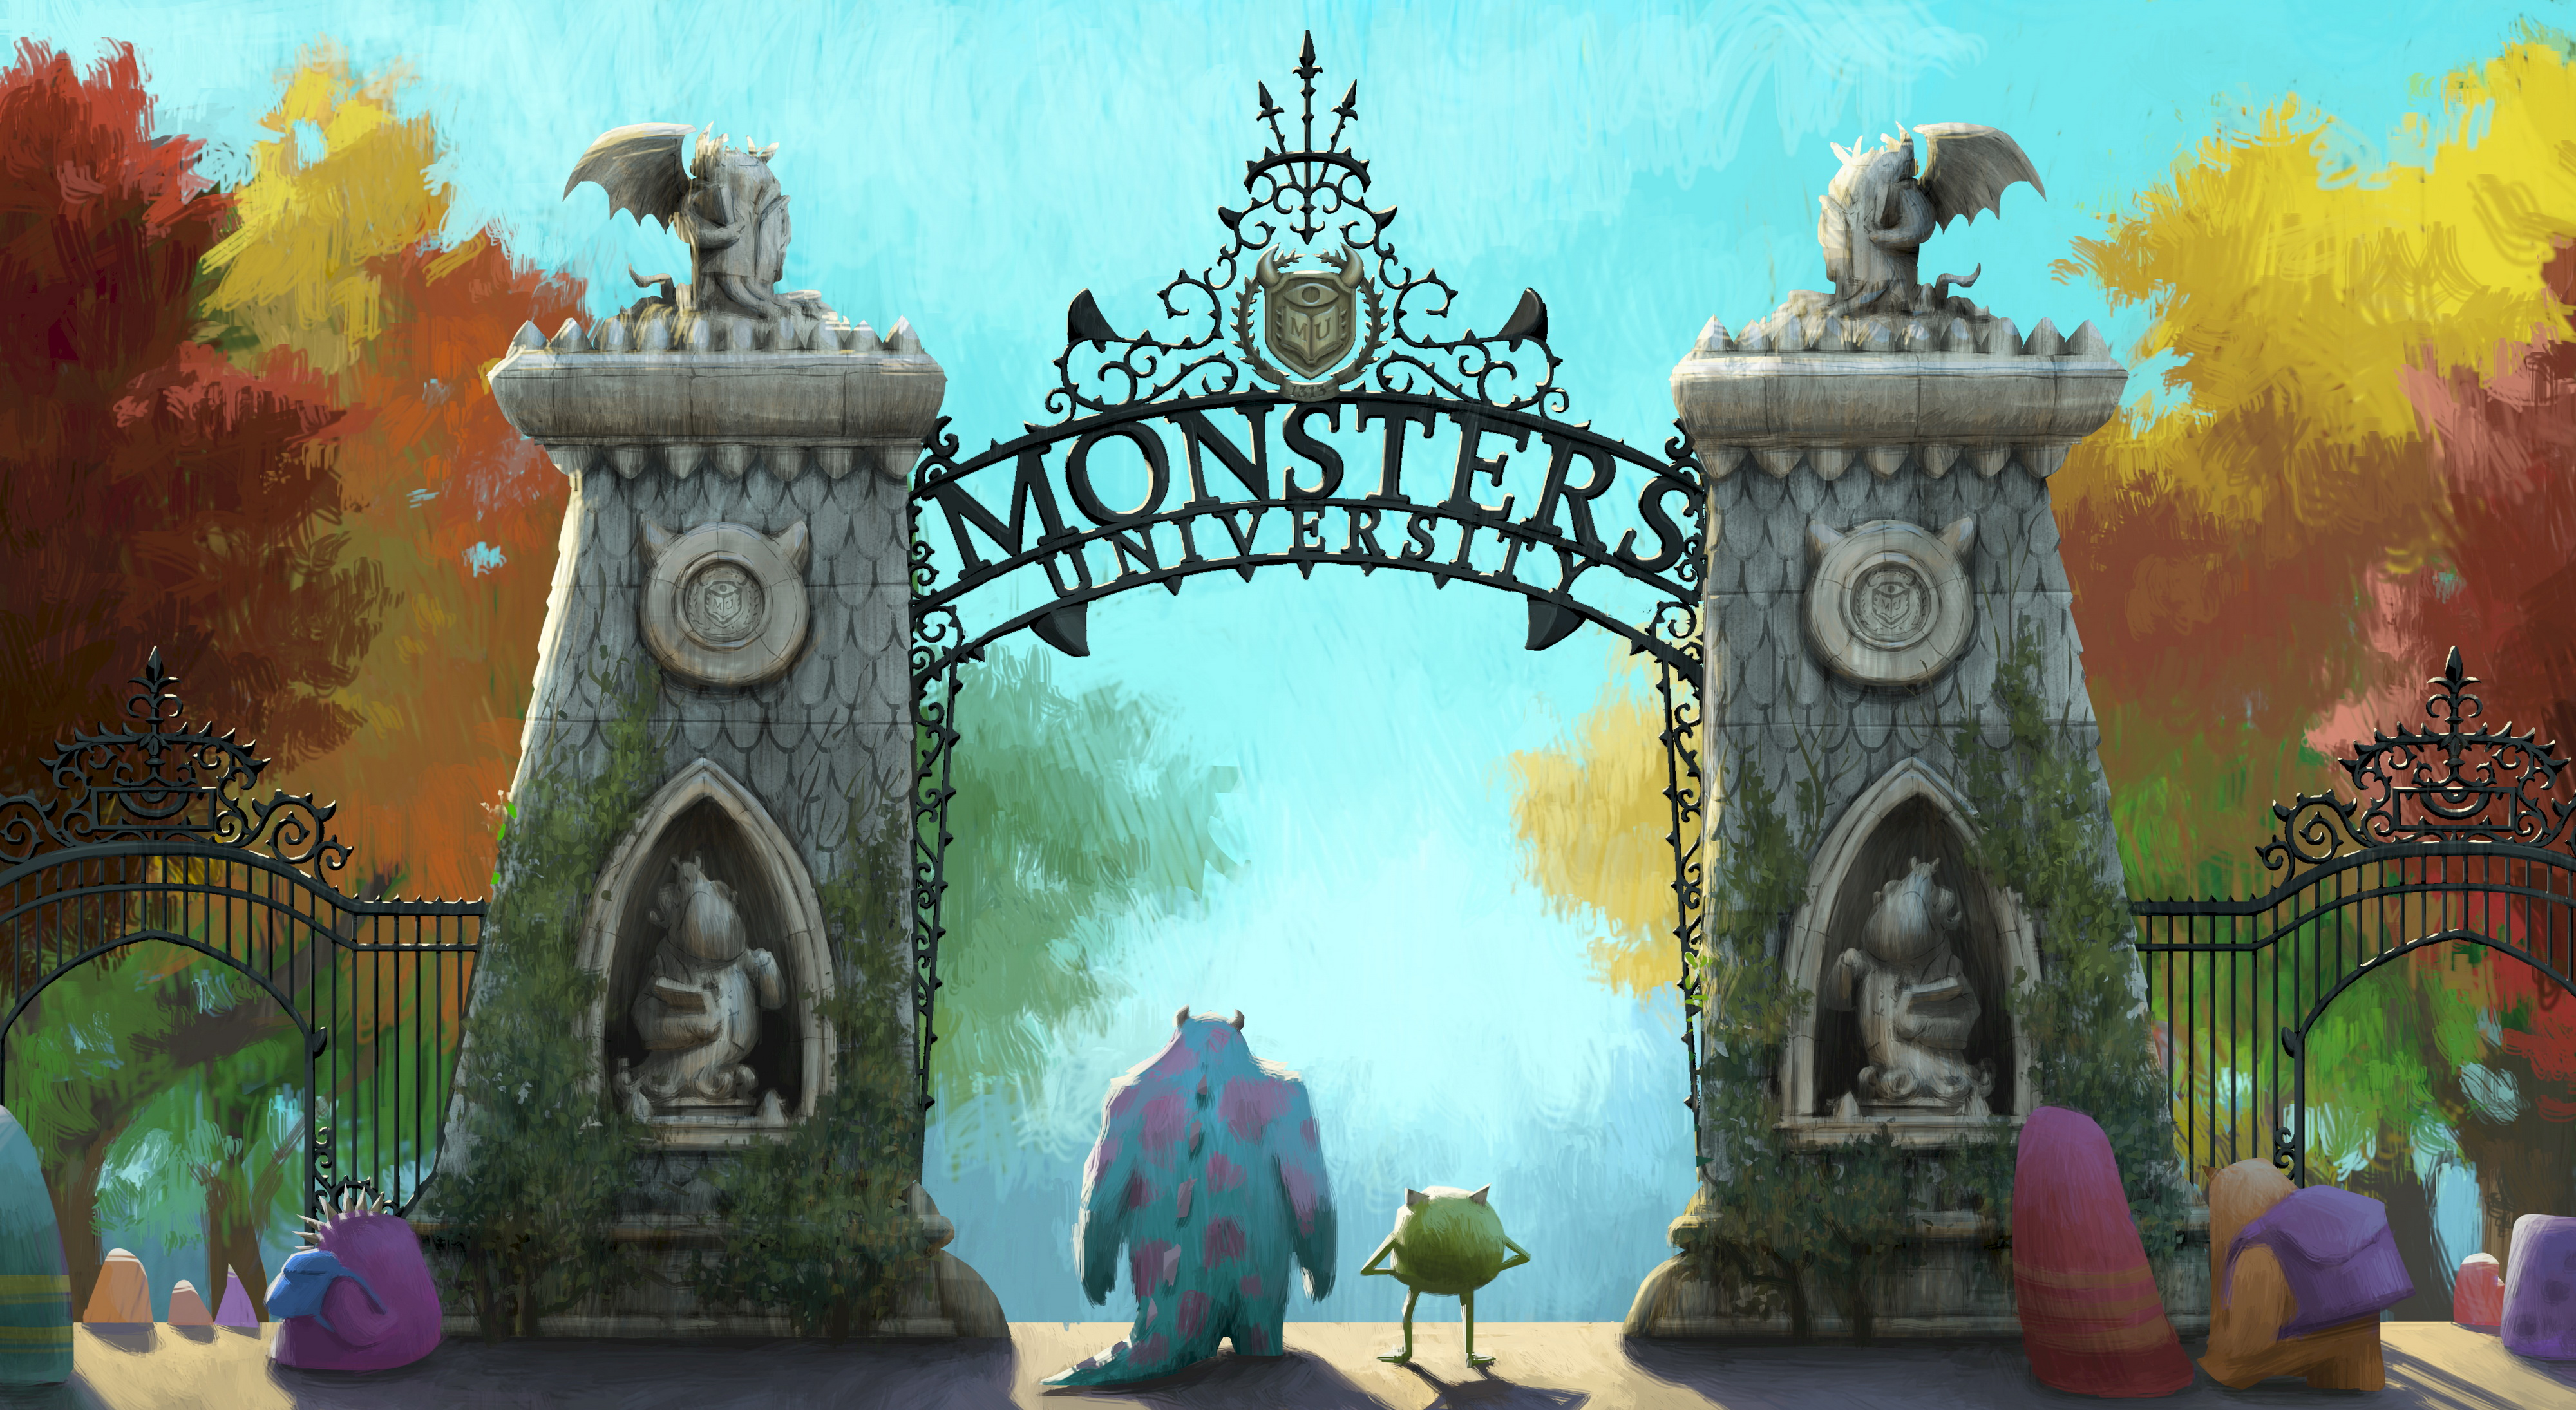 Watch a message from the dean of monsters university viral video watch a message from the dean of monsters university viral video film voltagebd Choice Image